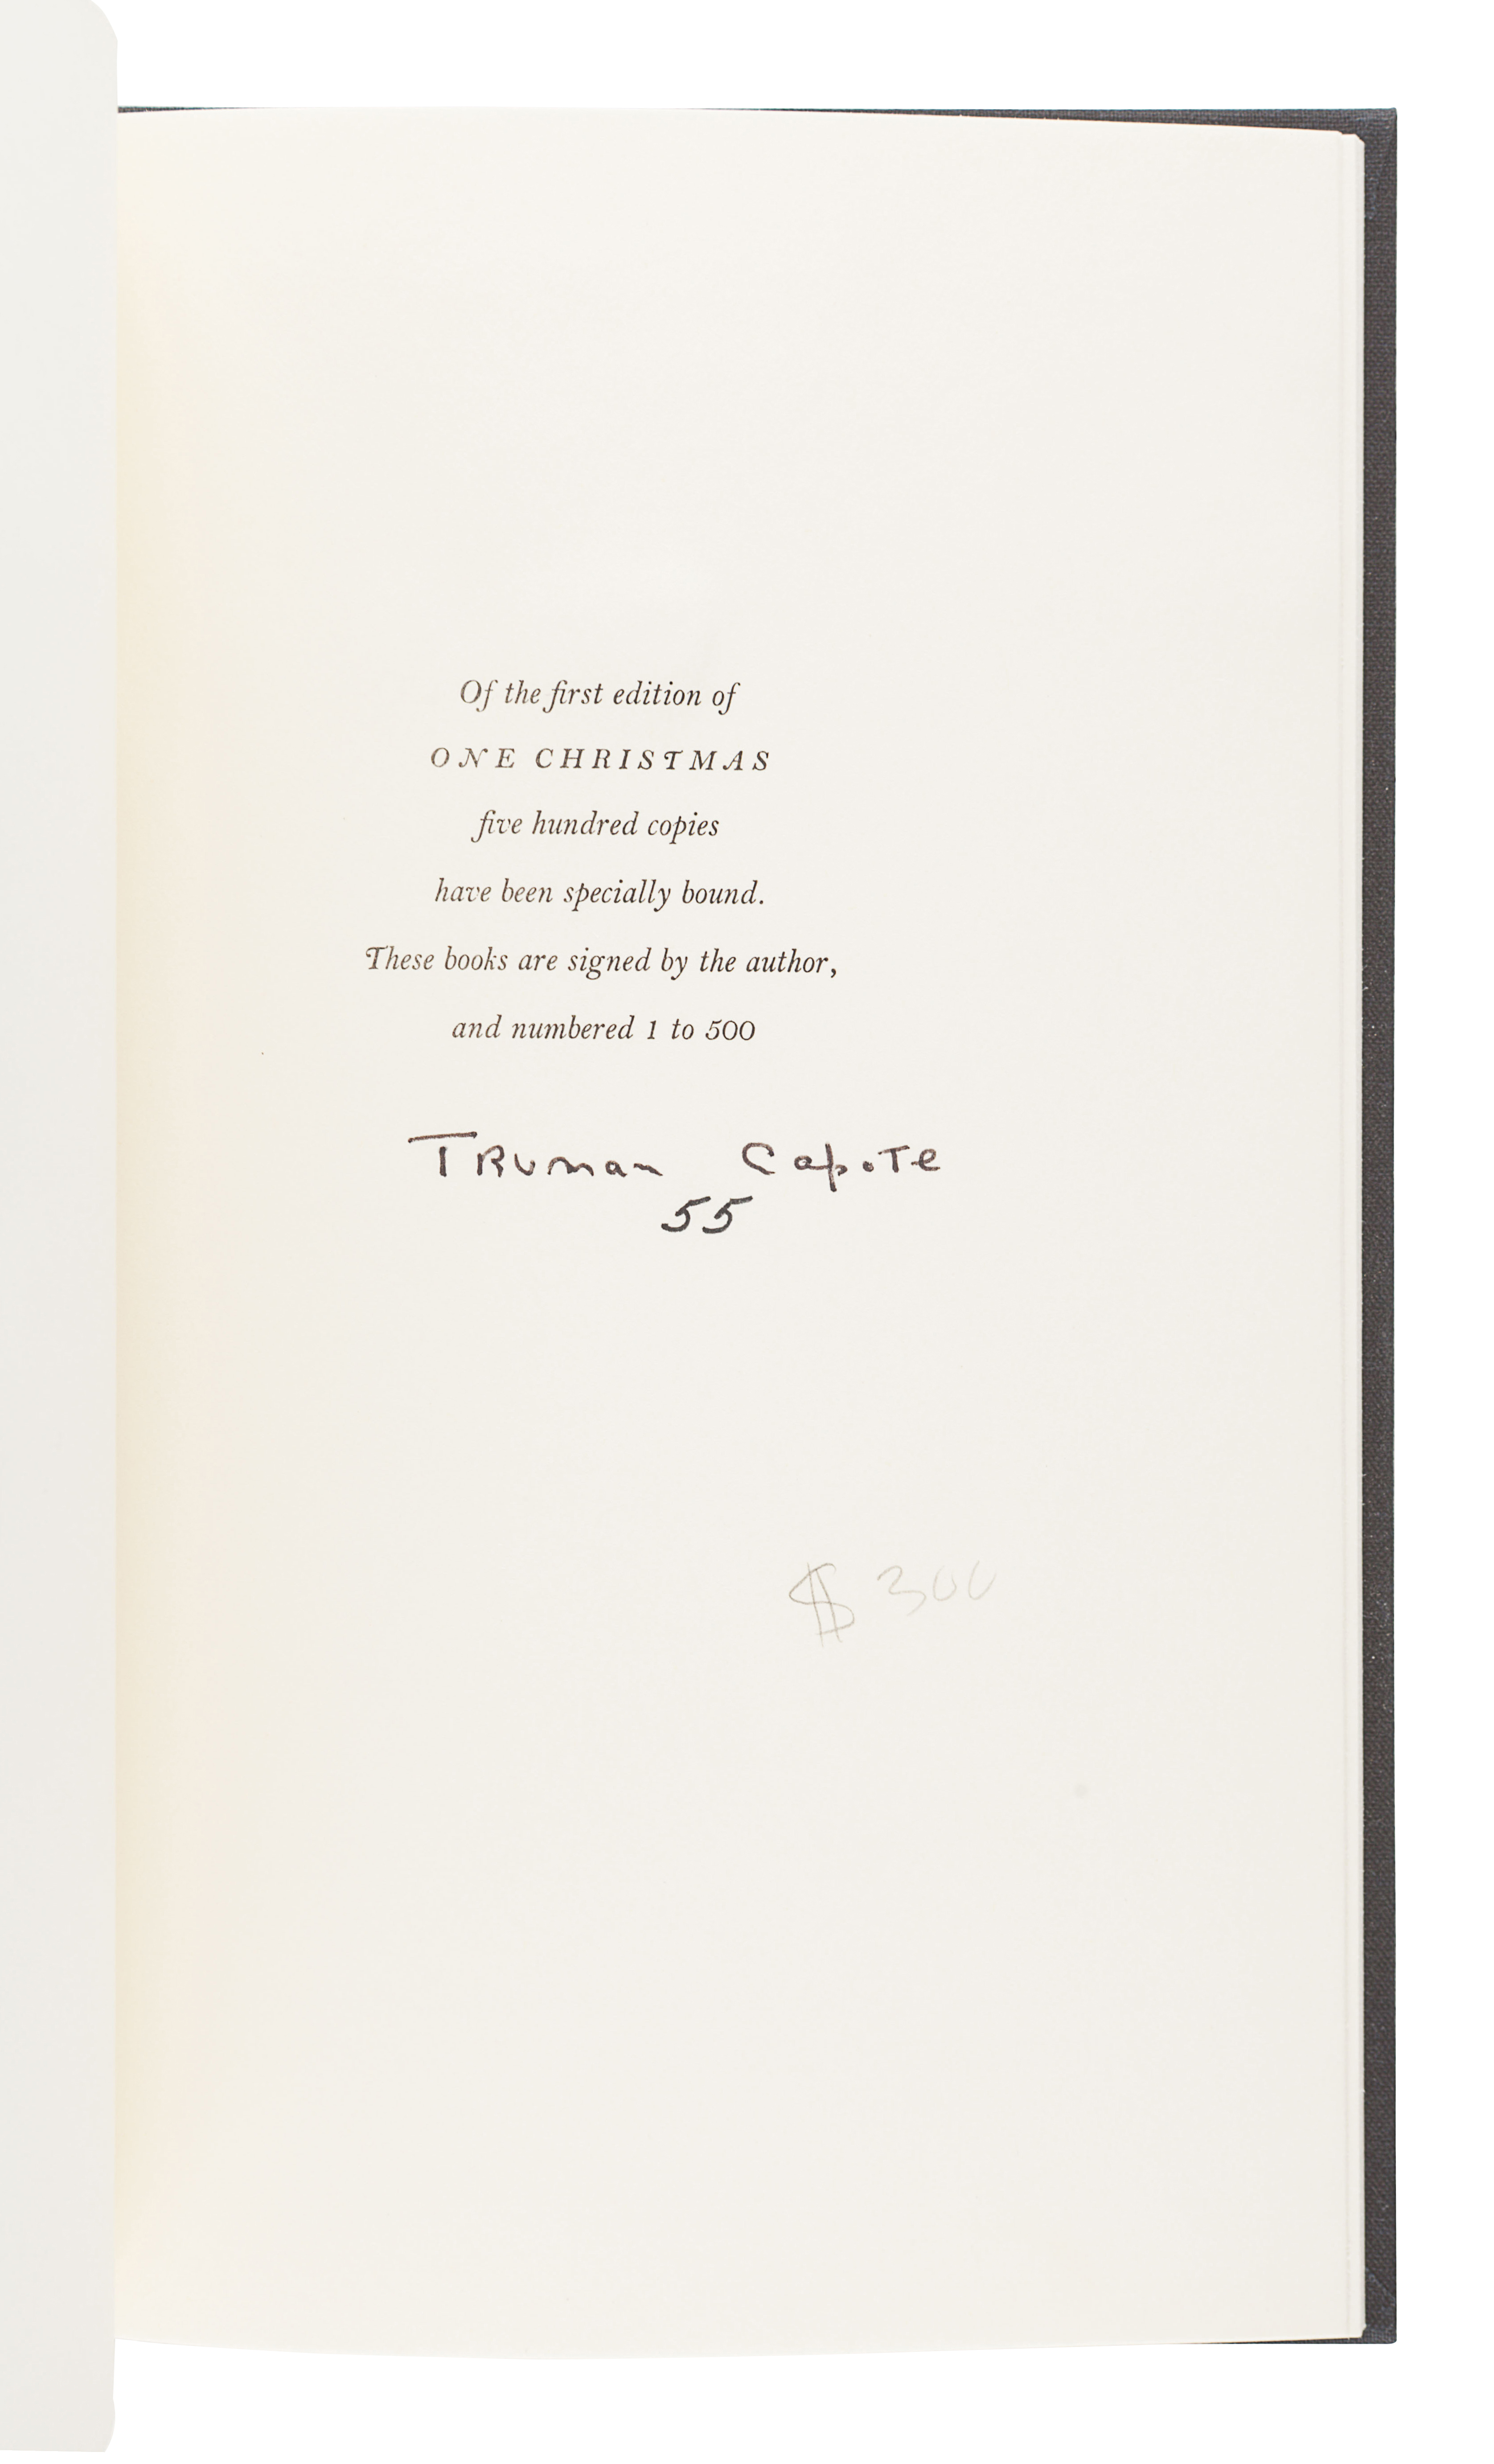 [CAPOTE, Truman (1924-1984)]. A group of 3 FIRST EDITIONS, SIGNED BY CAPOTE, comprising: - Image 2 of 4